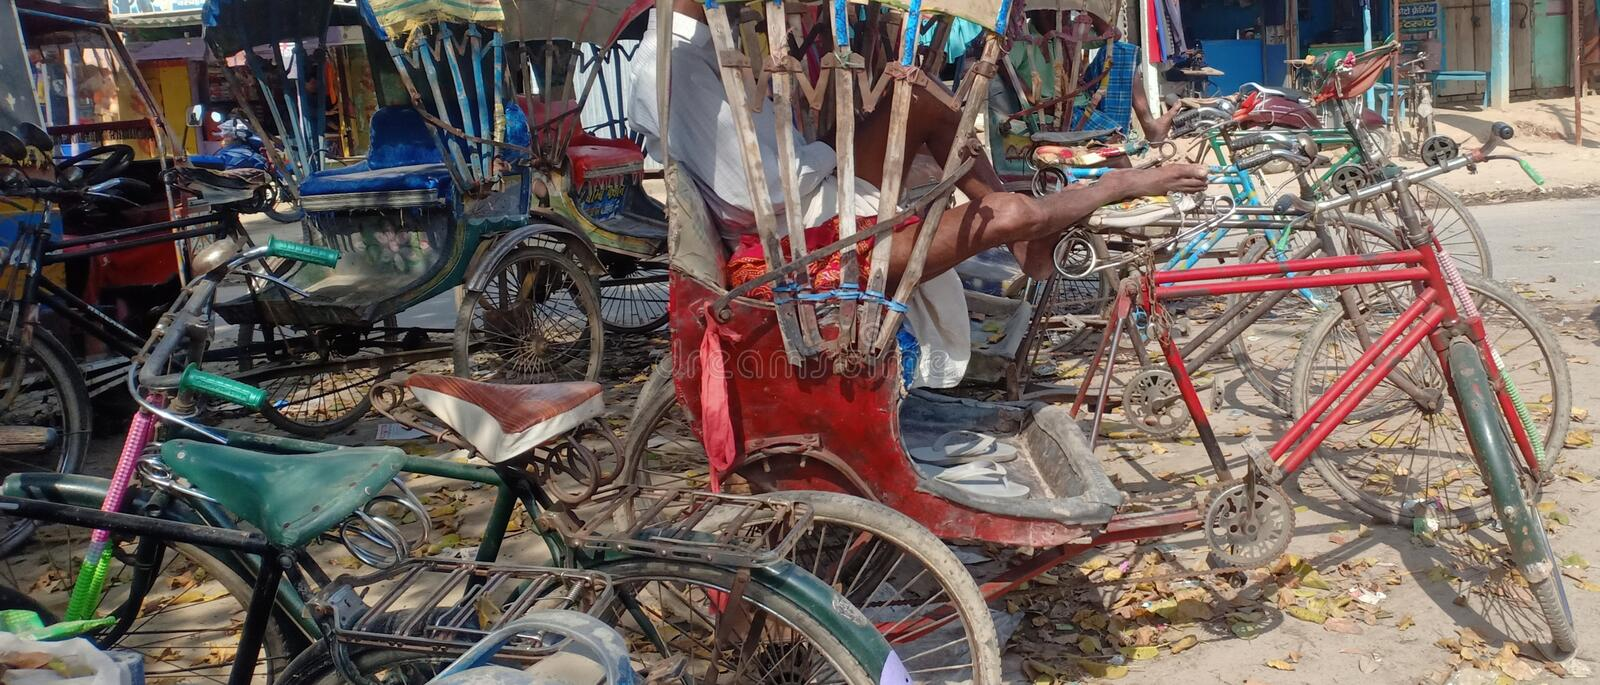 Rixa is comfortable transportation equipment for humane or ludguage  in madhubani India. This is three wheeler bicycle used for multipurpose and one driving stock photo